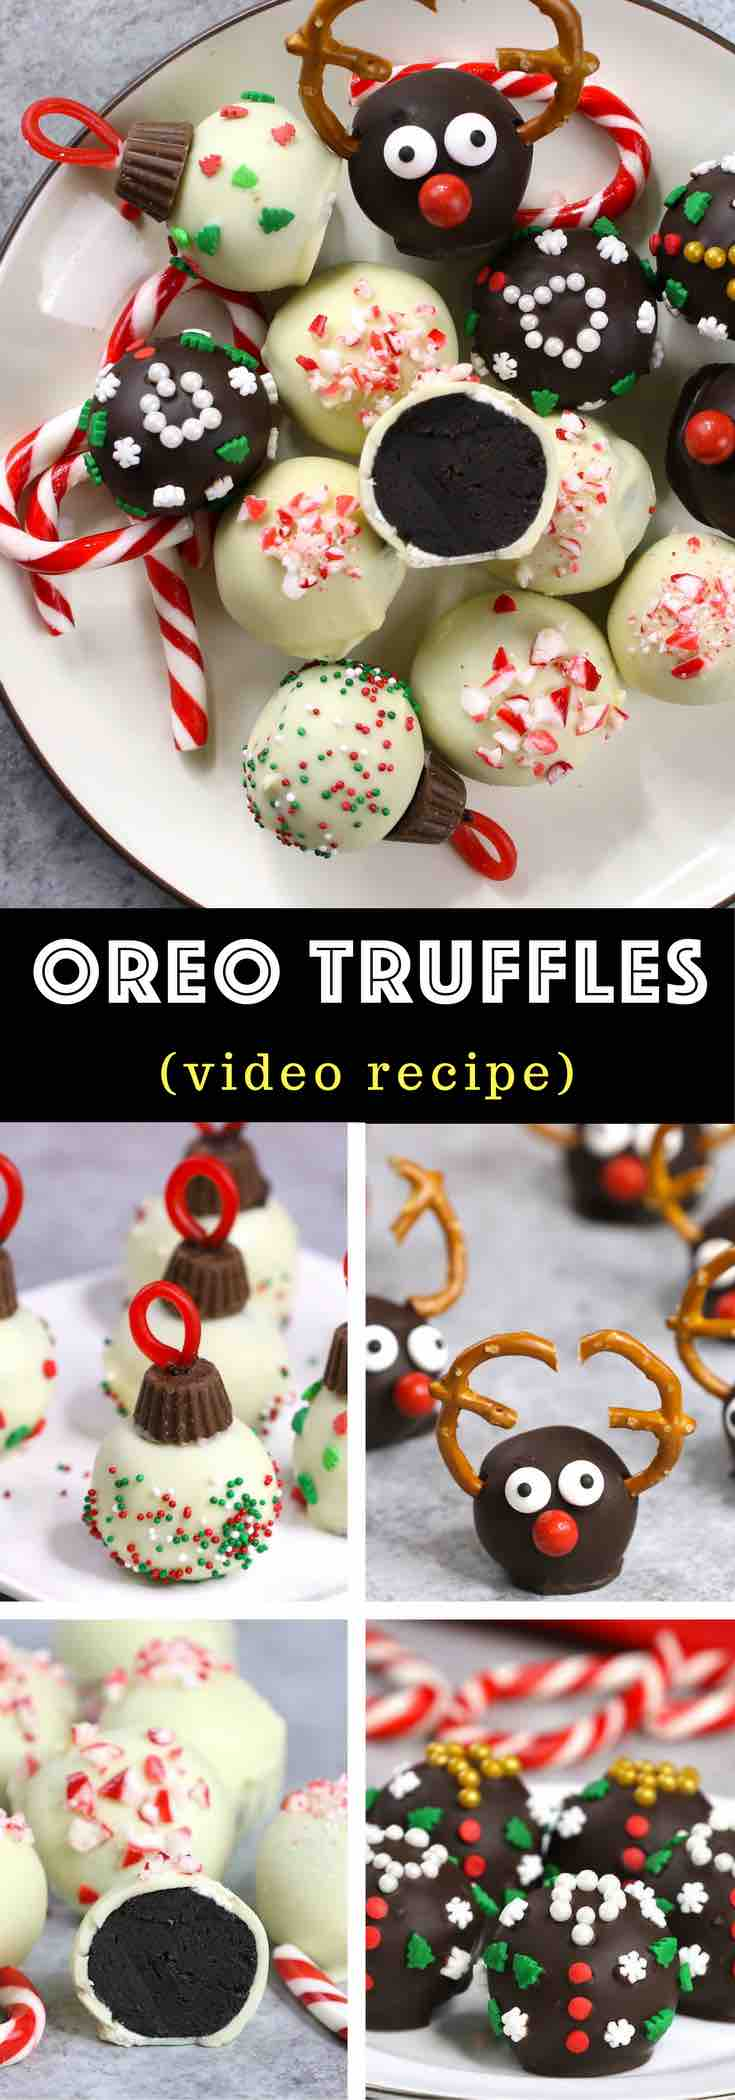 Oreo Truffles - the easiest and most beautiful dessert you will ever make! Only 4 ingredients required: Oreos, cream cheese, white chocolate and dark semi-sweet chocolate. Sprinkles are optional. Oreo crumbs are mixed with creamy cheesecake, and then covered with melted chocolate. So Good! Quick and easy recipe, party desserts. Holiday recipes. No Bake. Christmas treats. Vegetarian. Video recipe. | Tipbuzz.com